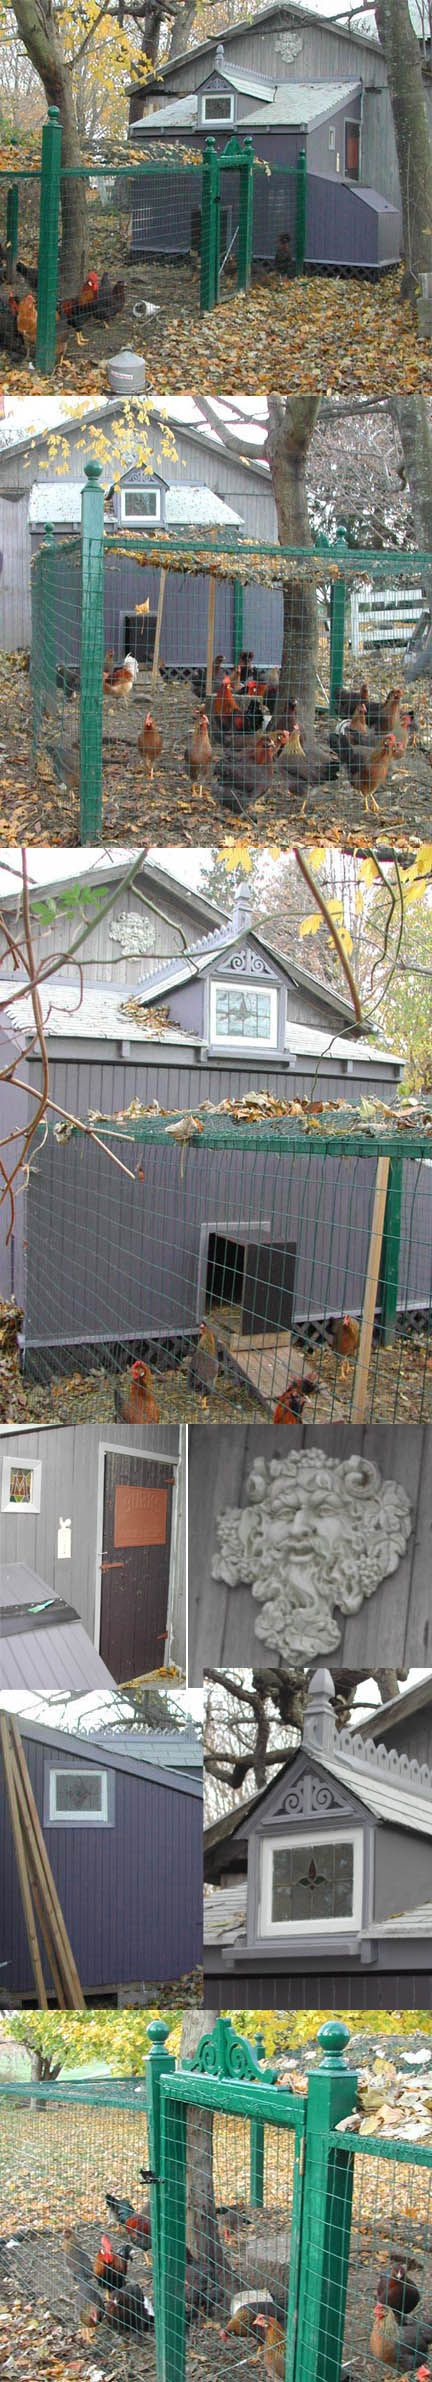 LOVE this coop!~Victorian Style Chicken coop I built. Features a relief of Bacchus overlooking the vineyards.